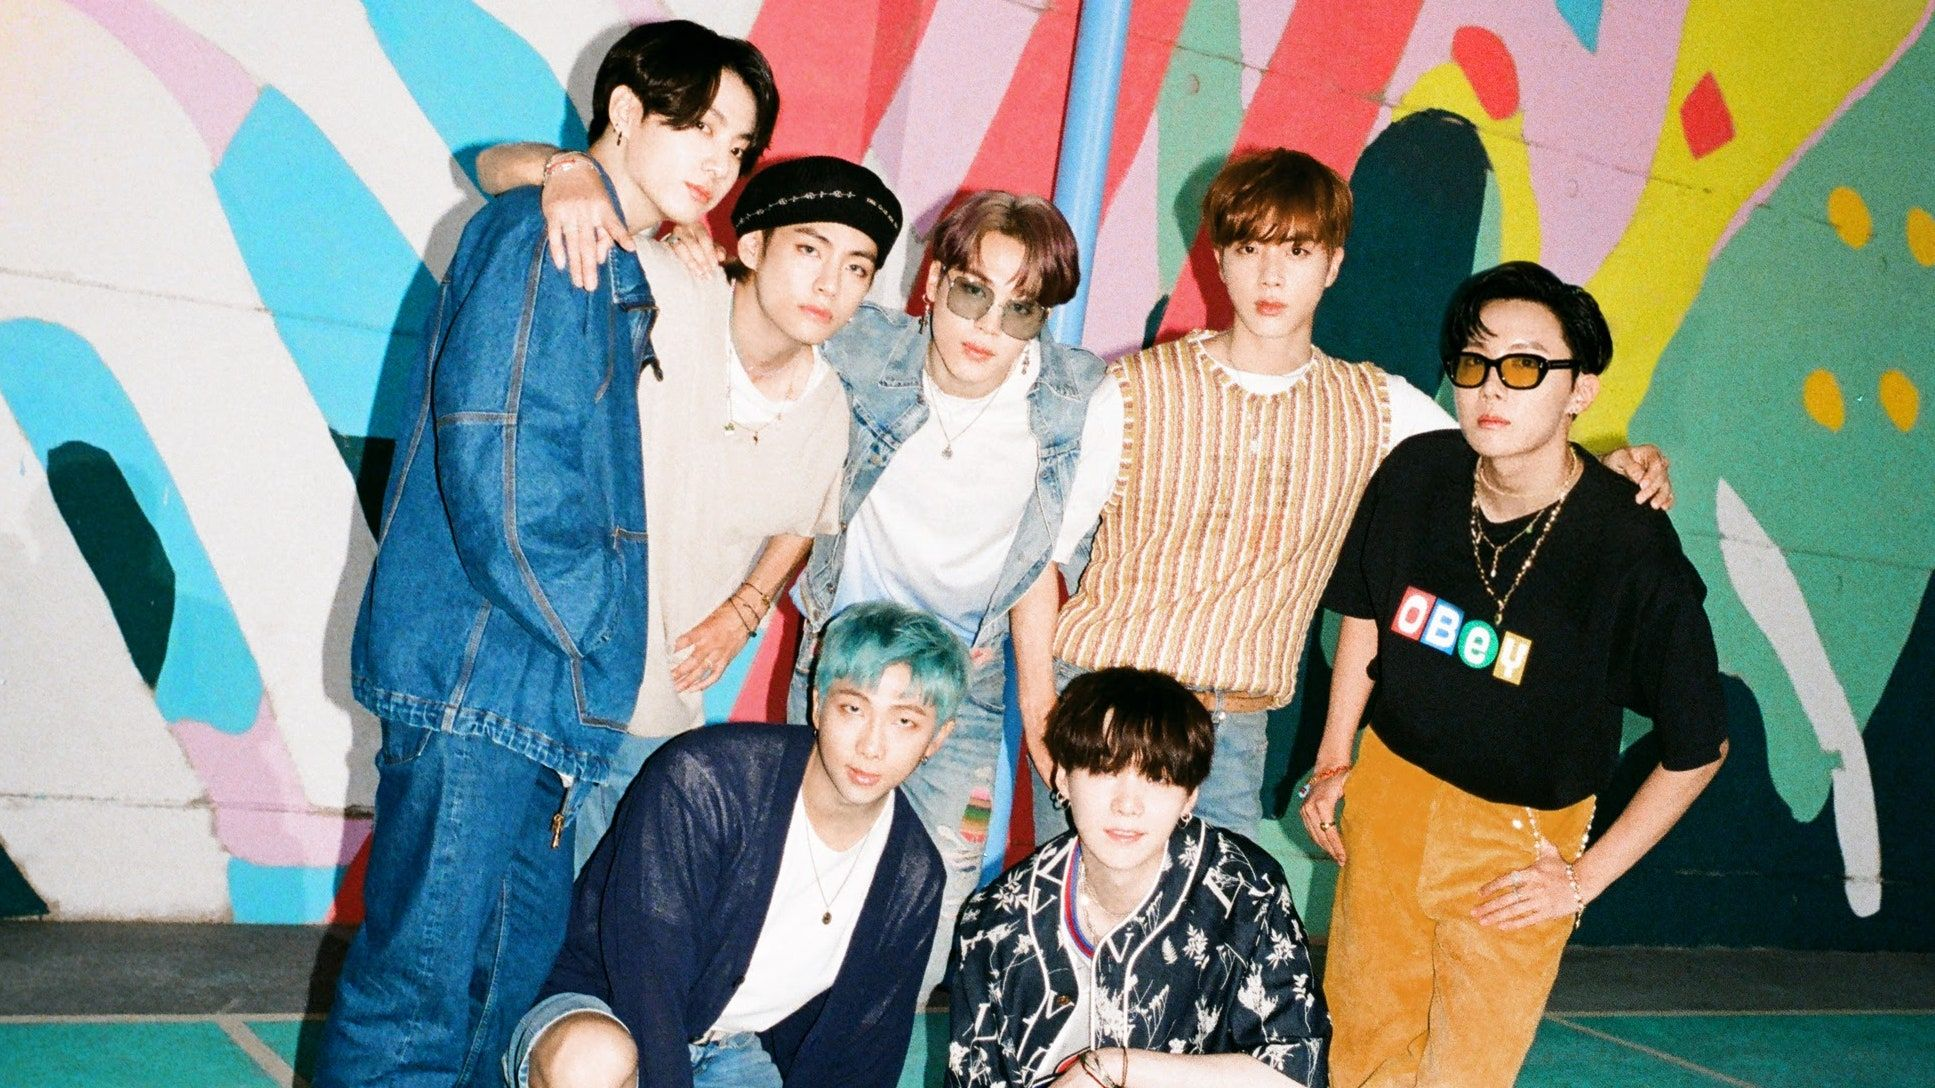 The First Group Photo For Bts S Dynamite Has Arrived Bts Group Photos Bts Group Picture Bts Group Bts wallpaper desktop dynamite